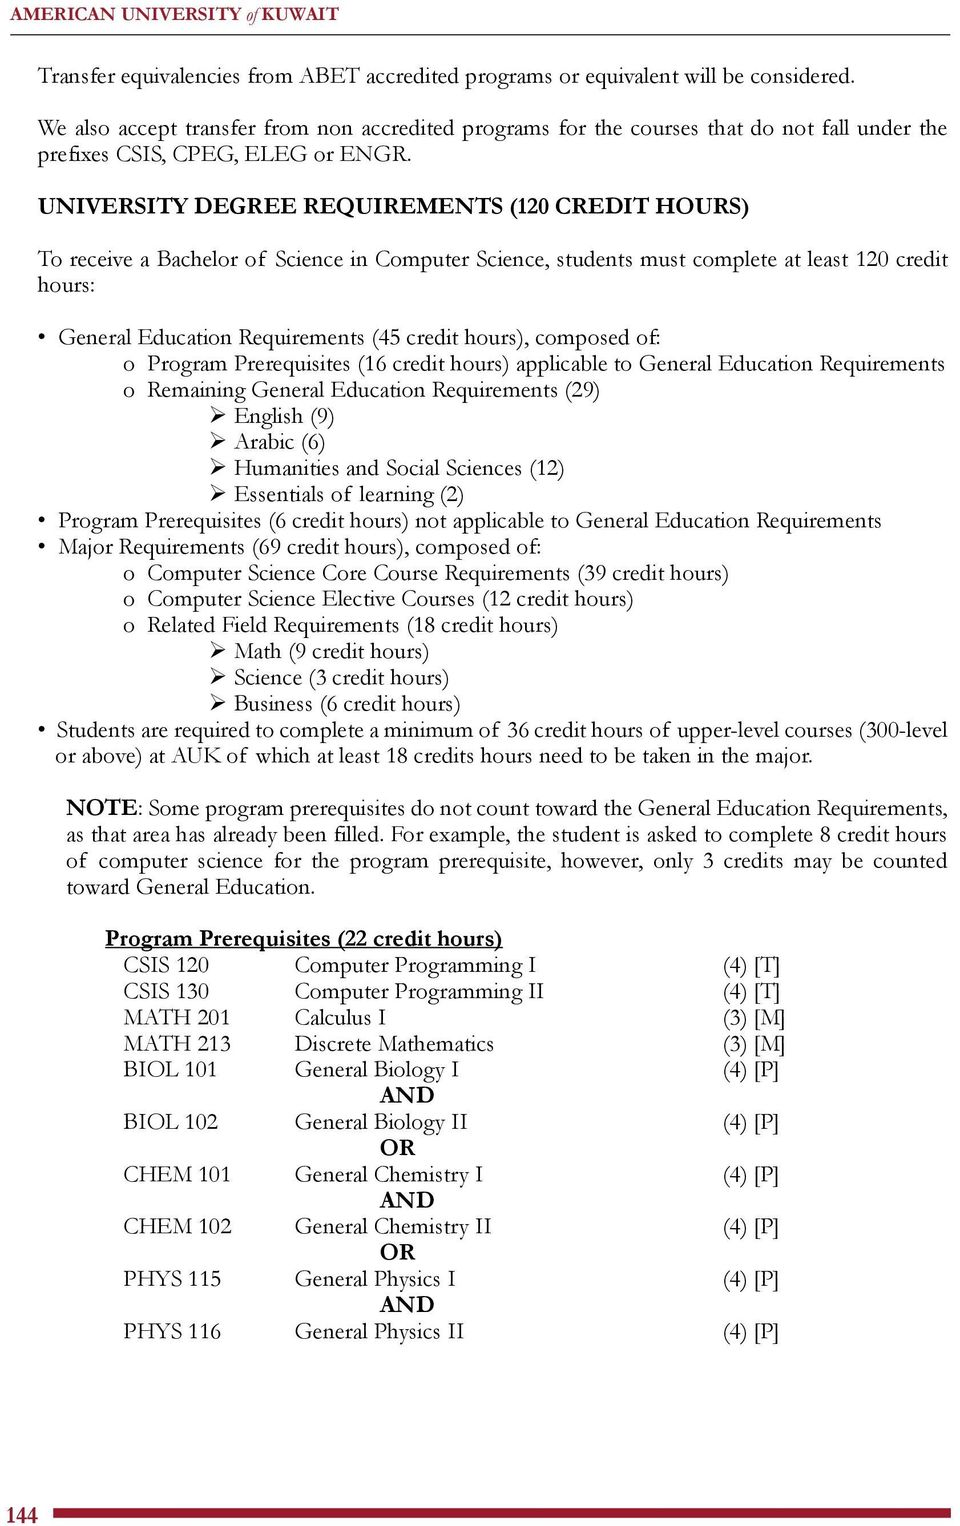 UNIVERSITY DEGREE REQUIREMENTS (120 CREDIT HOURS) To receive a Bachelor of Science in Computer Science, students must complete at least 120 credit hours: General Education Requirements (45 credit